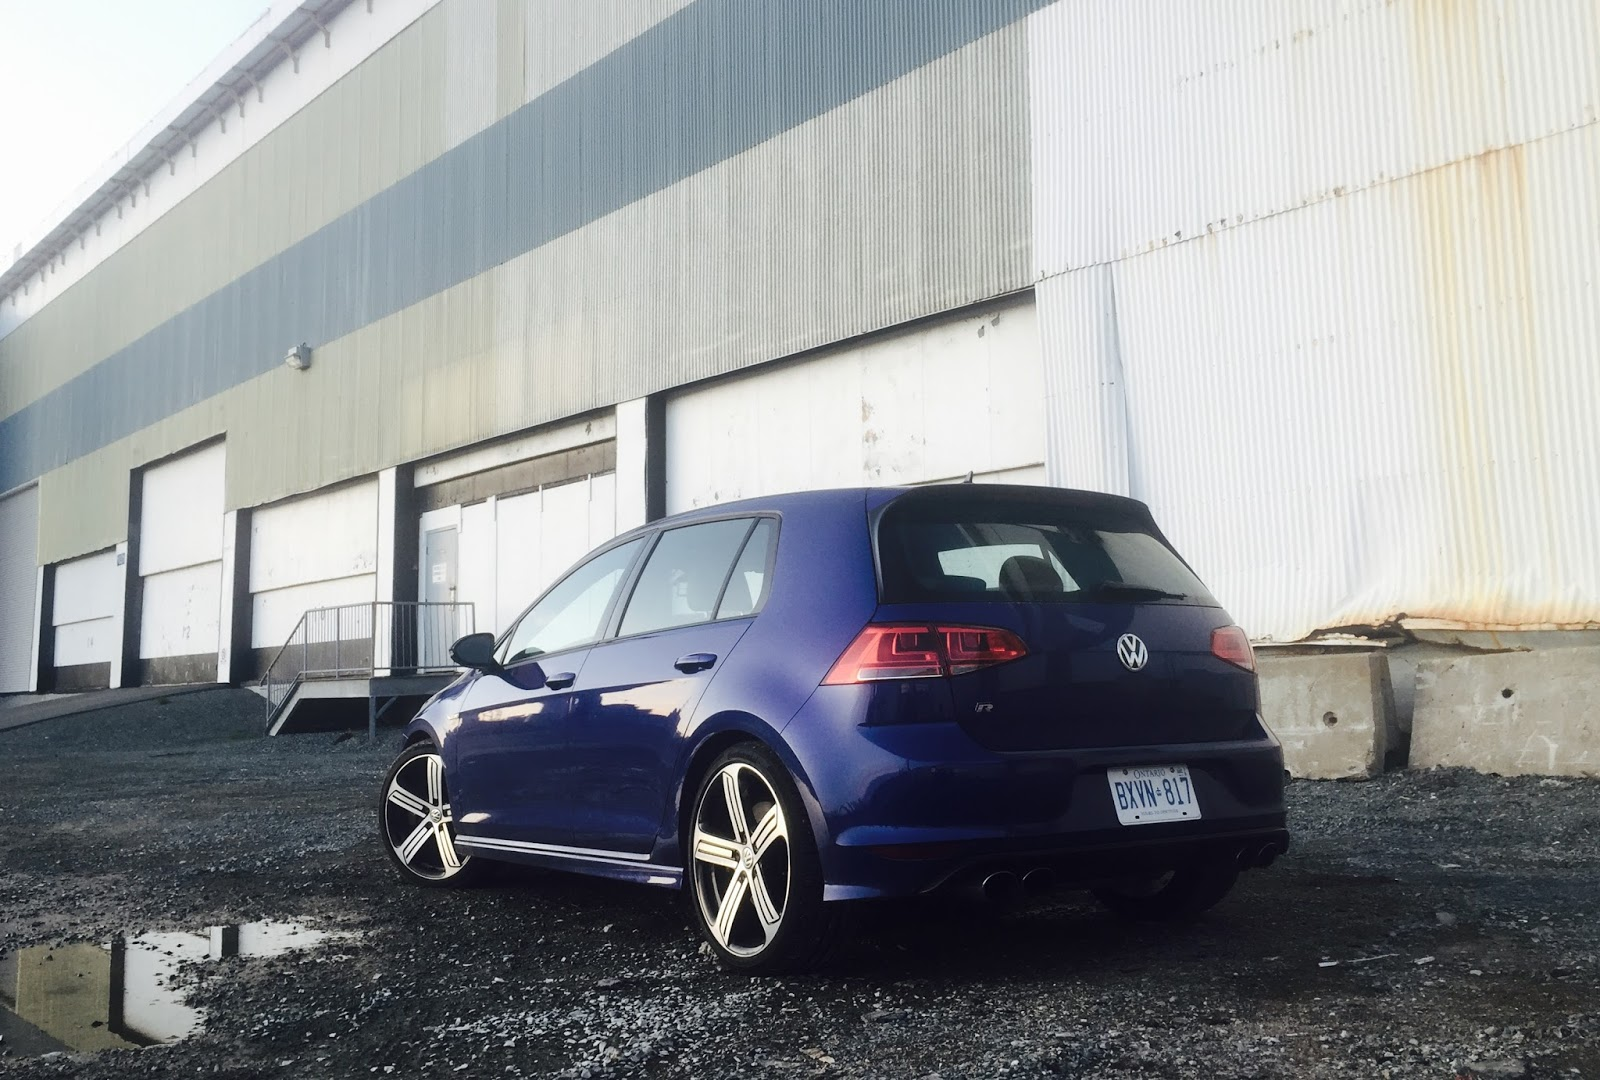 2016 volkswagen golf r review all the right compromises. Black Bedroom Furniture Sets. Home Design Ideas